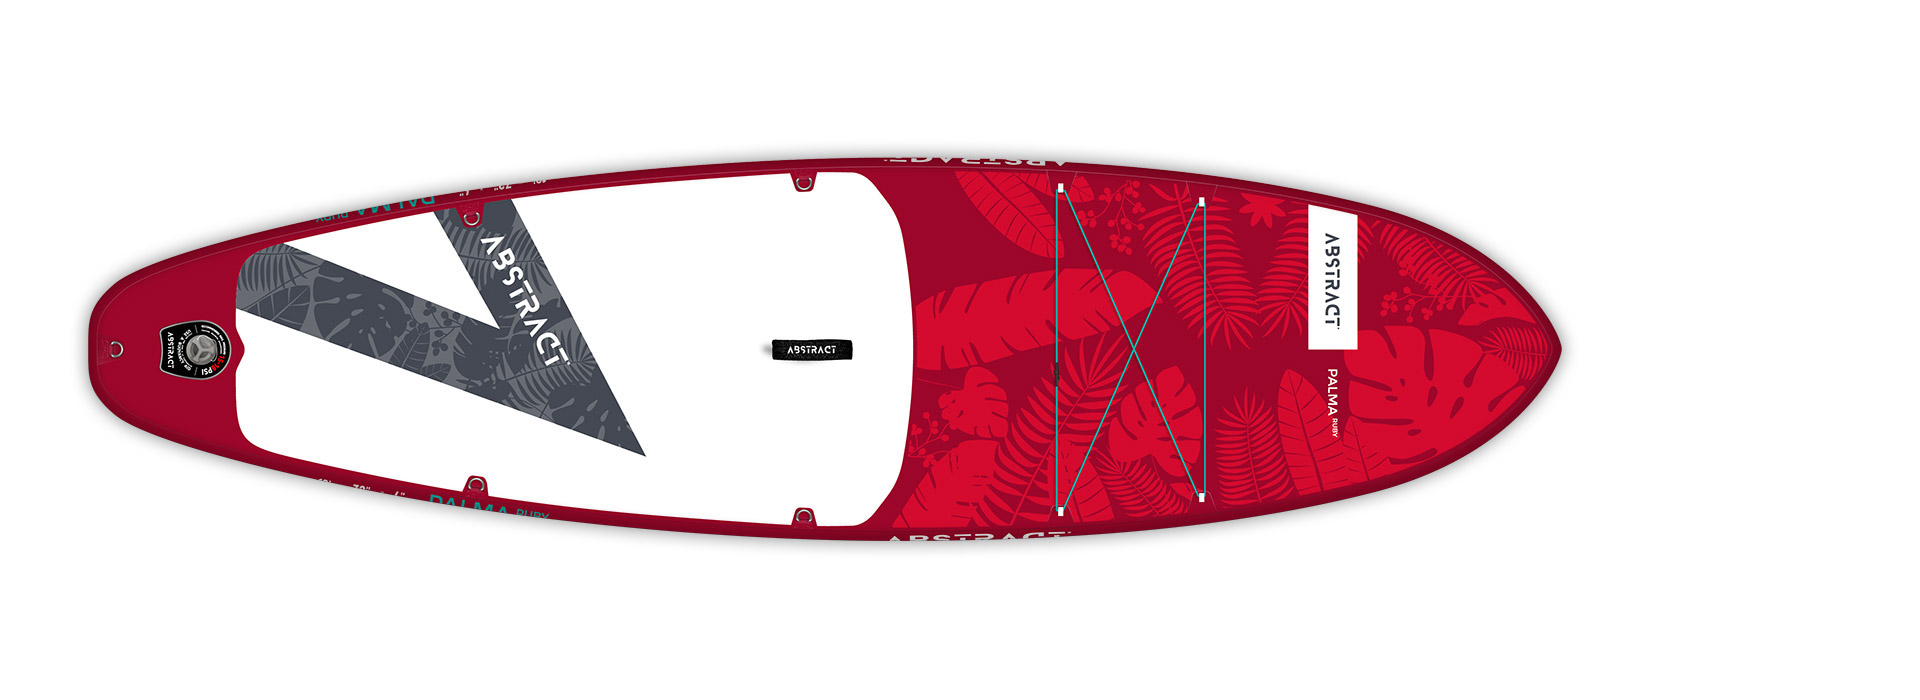 Planche de paddle Board gonflable Palma Ruby (Rouge) Abstract 2021